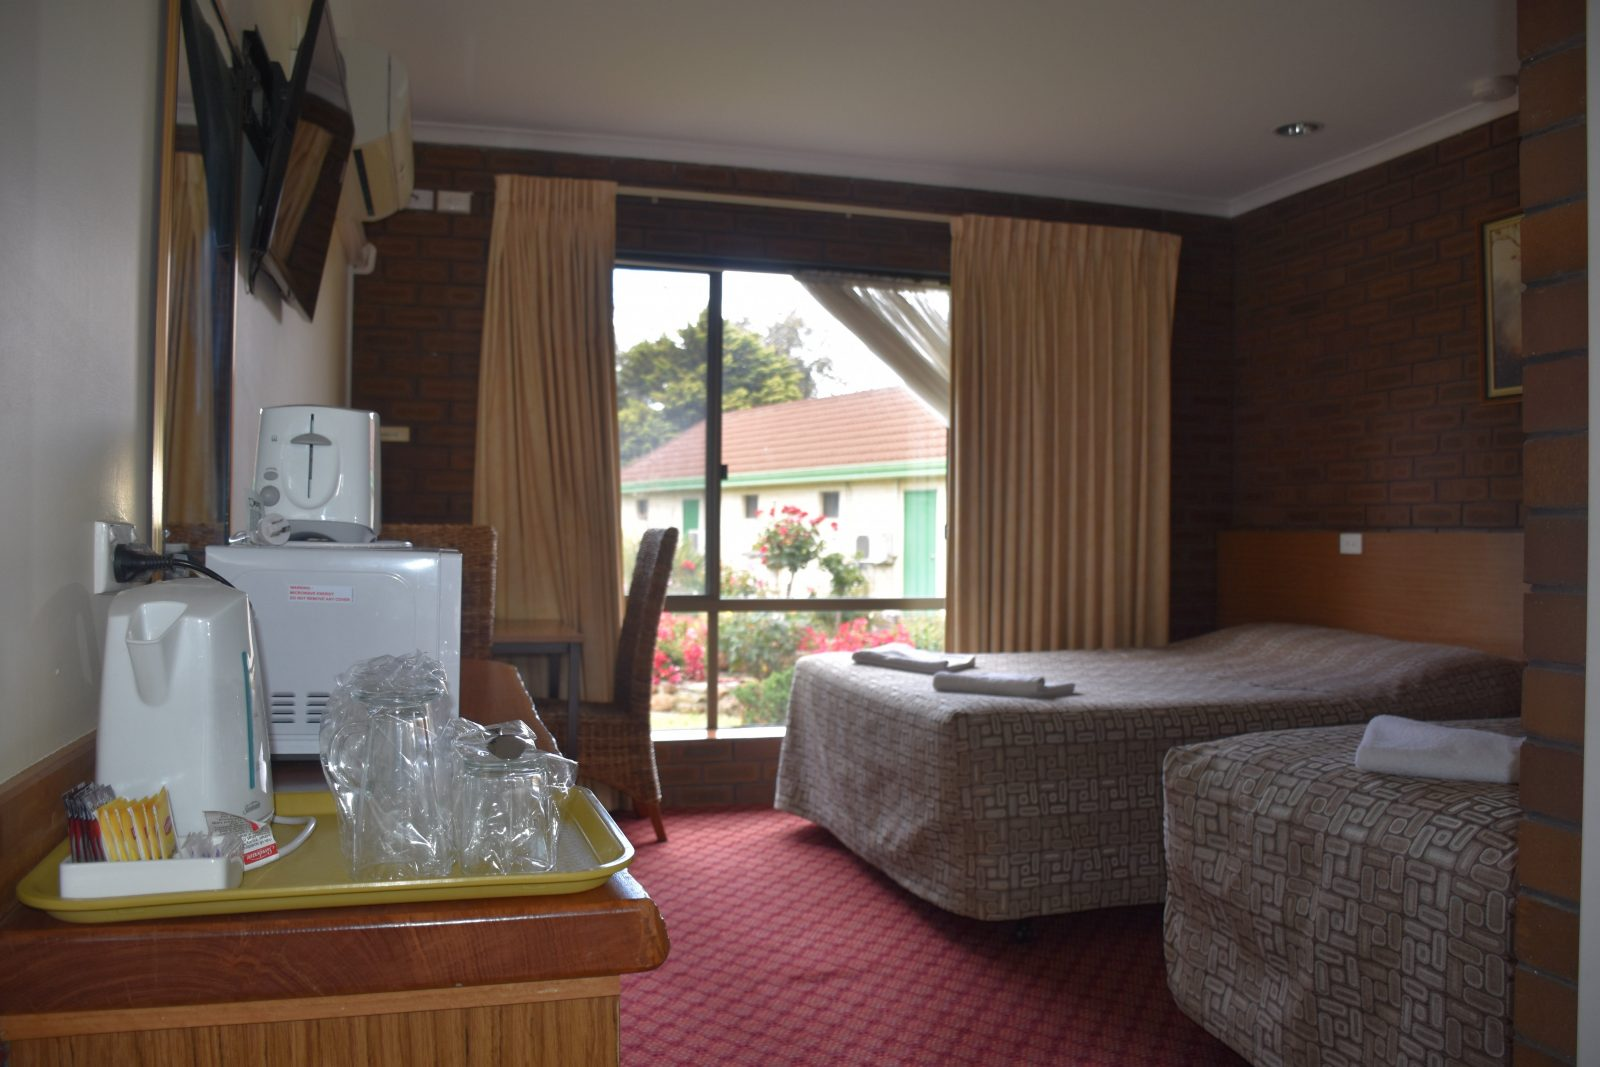 Mount Barker Valley Views Motel and Chalets, Mt Barker, Western Australia